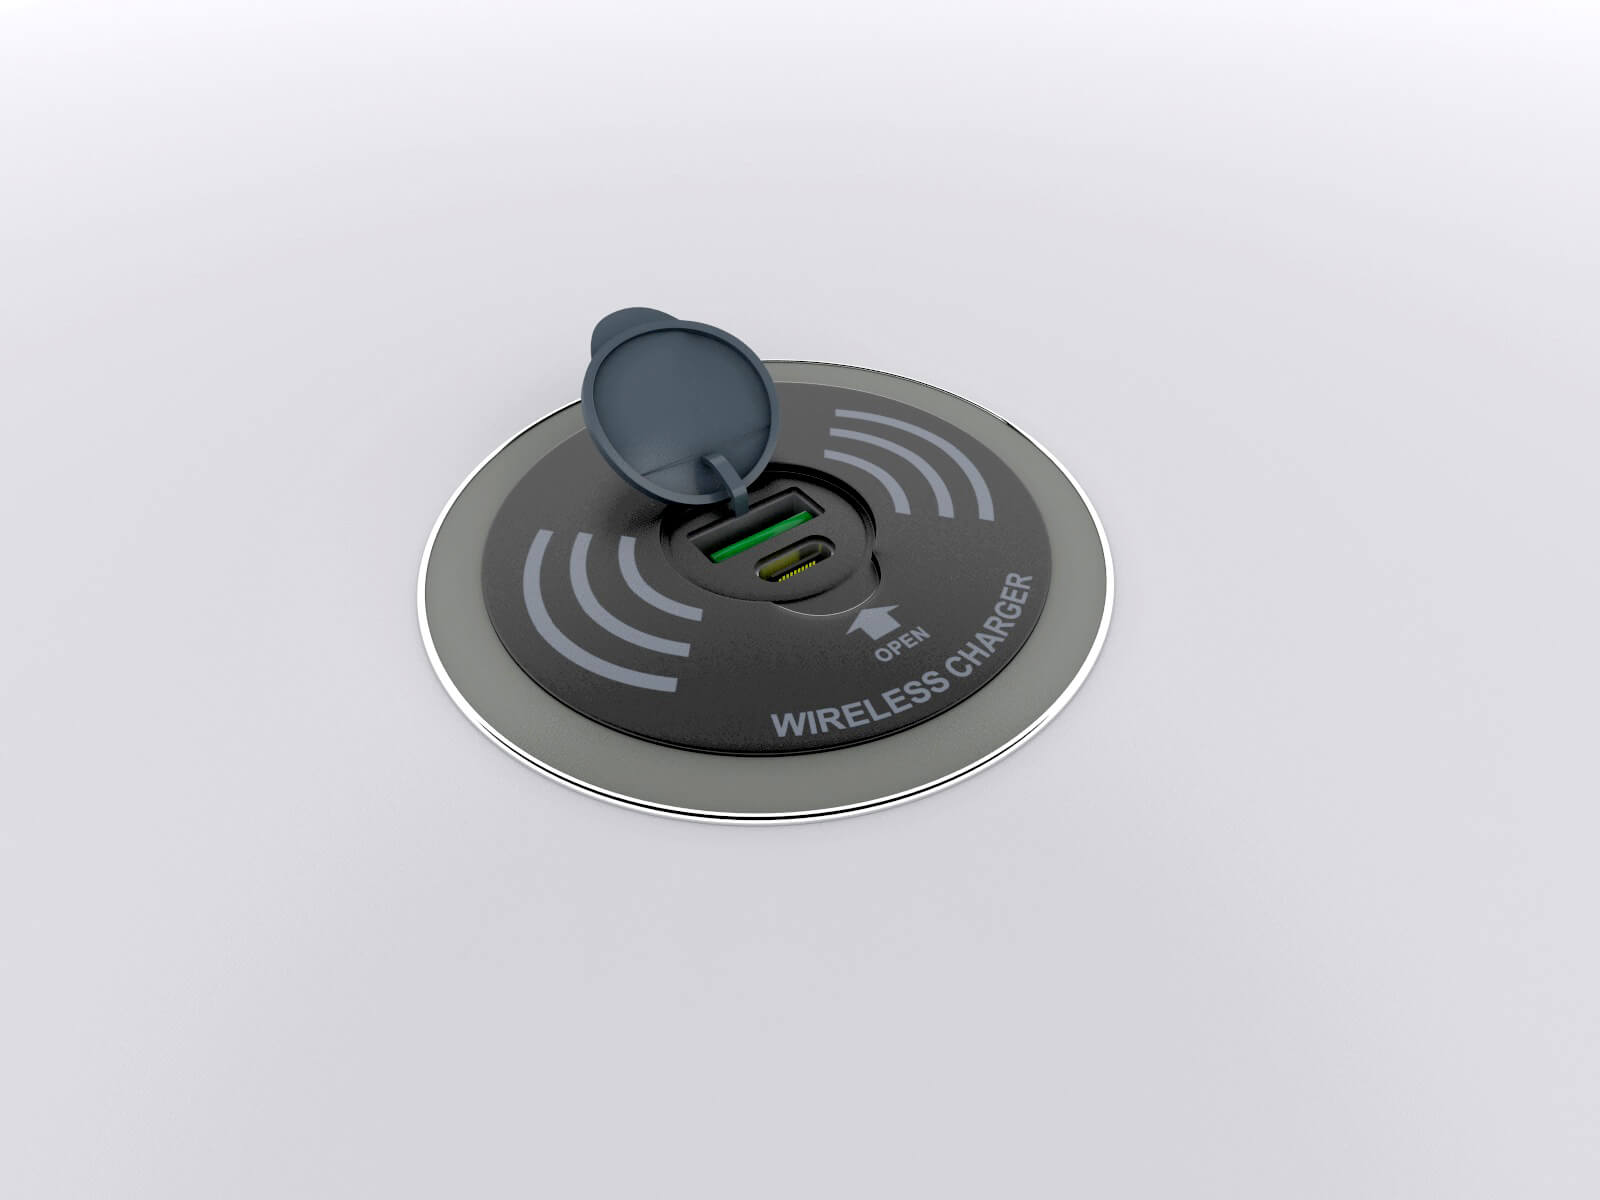 Wireless and Wired Charging Pad - View 2 (Open)